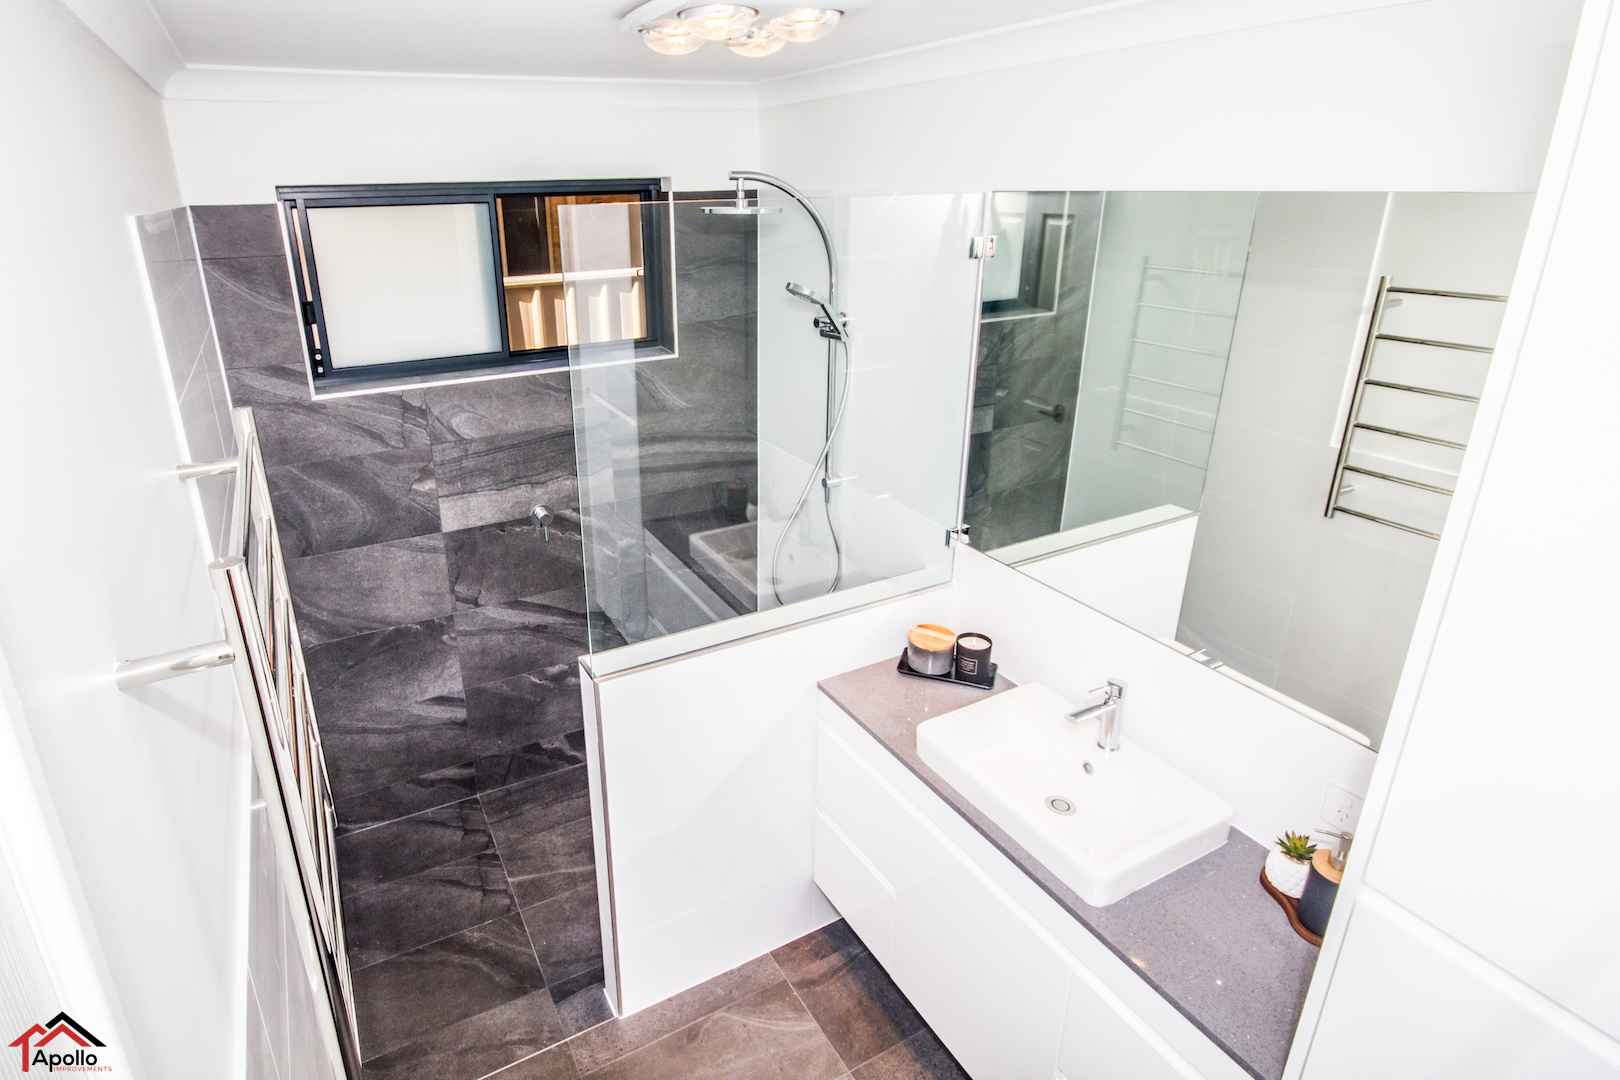 Canningvale Bathroom remodel